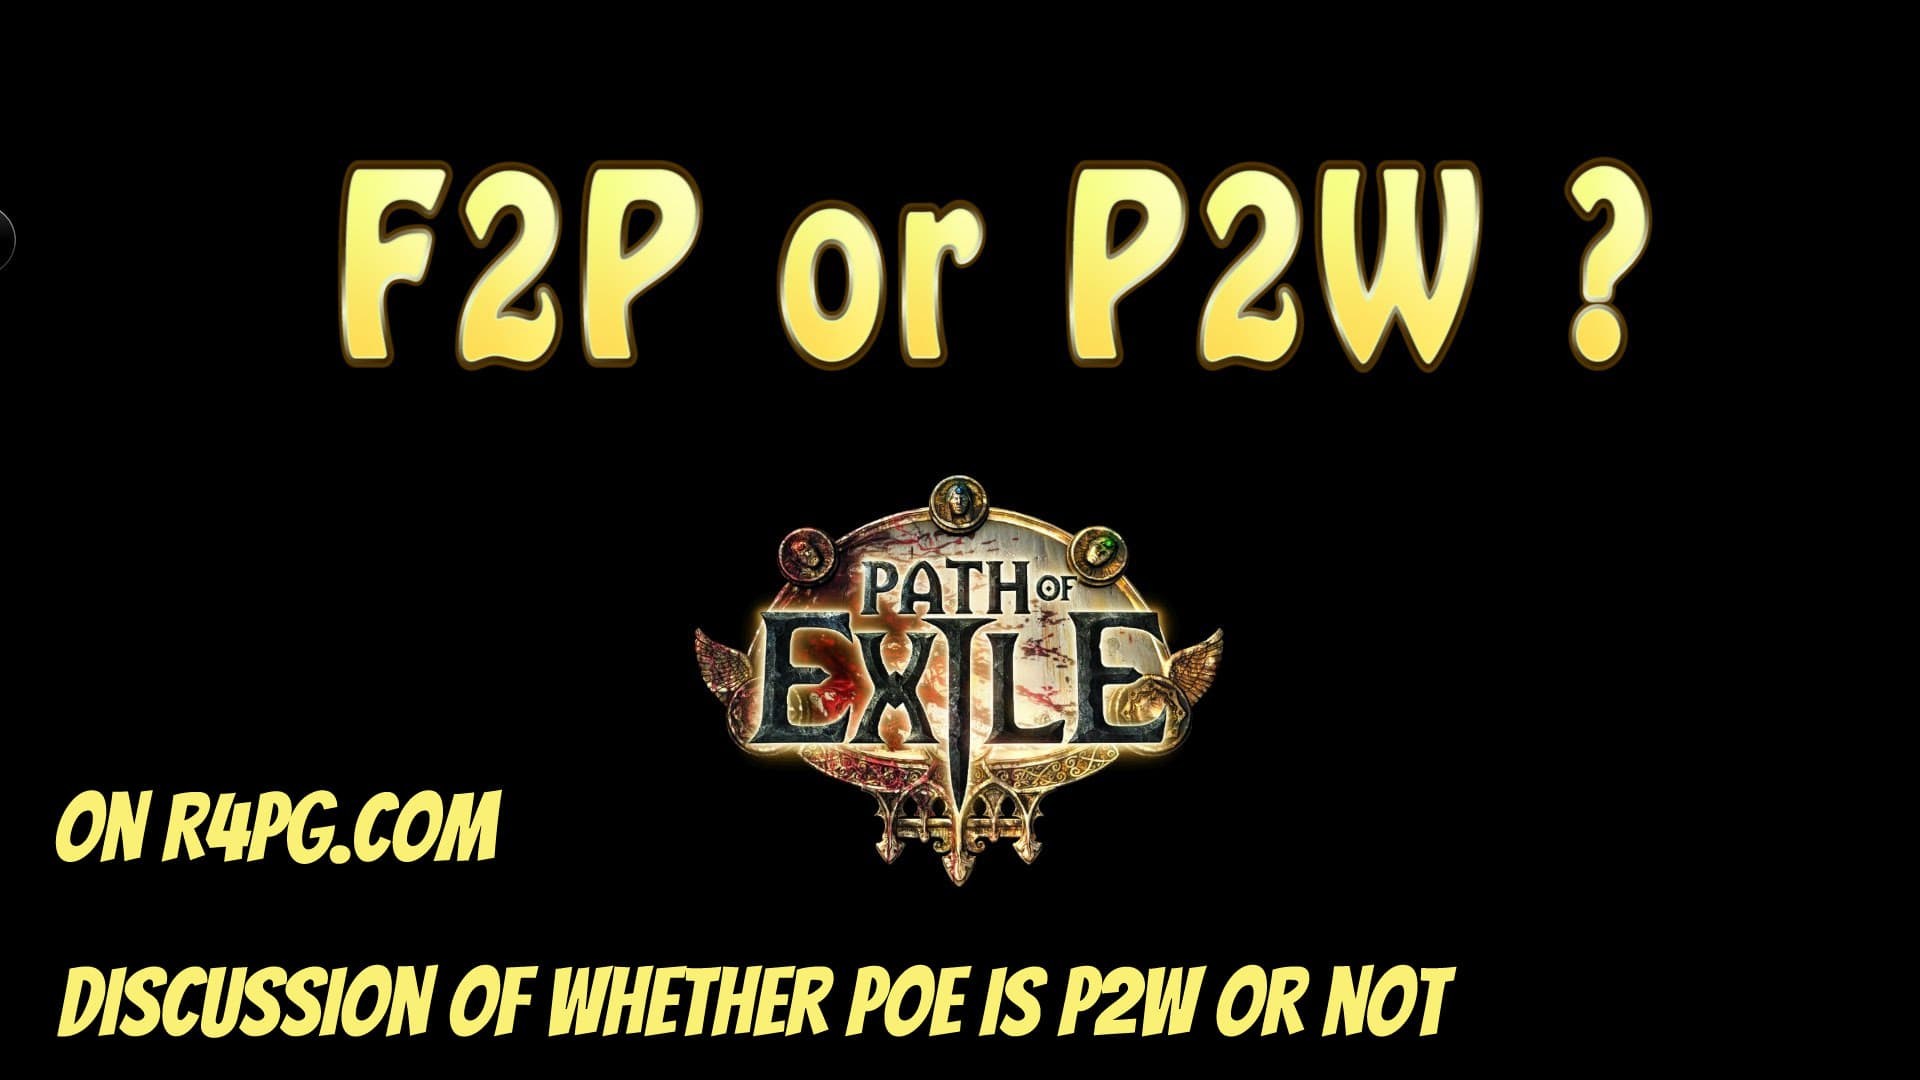 Lets go on discussing whether Path of Exile is P2W or not